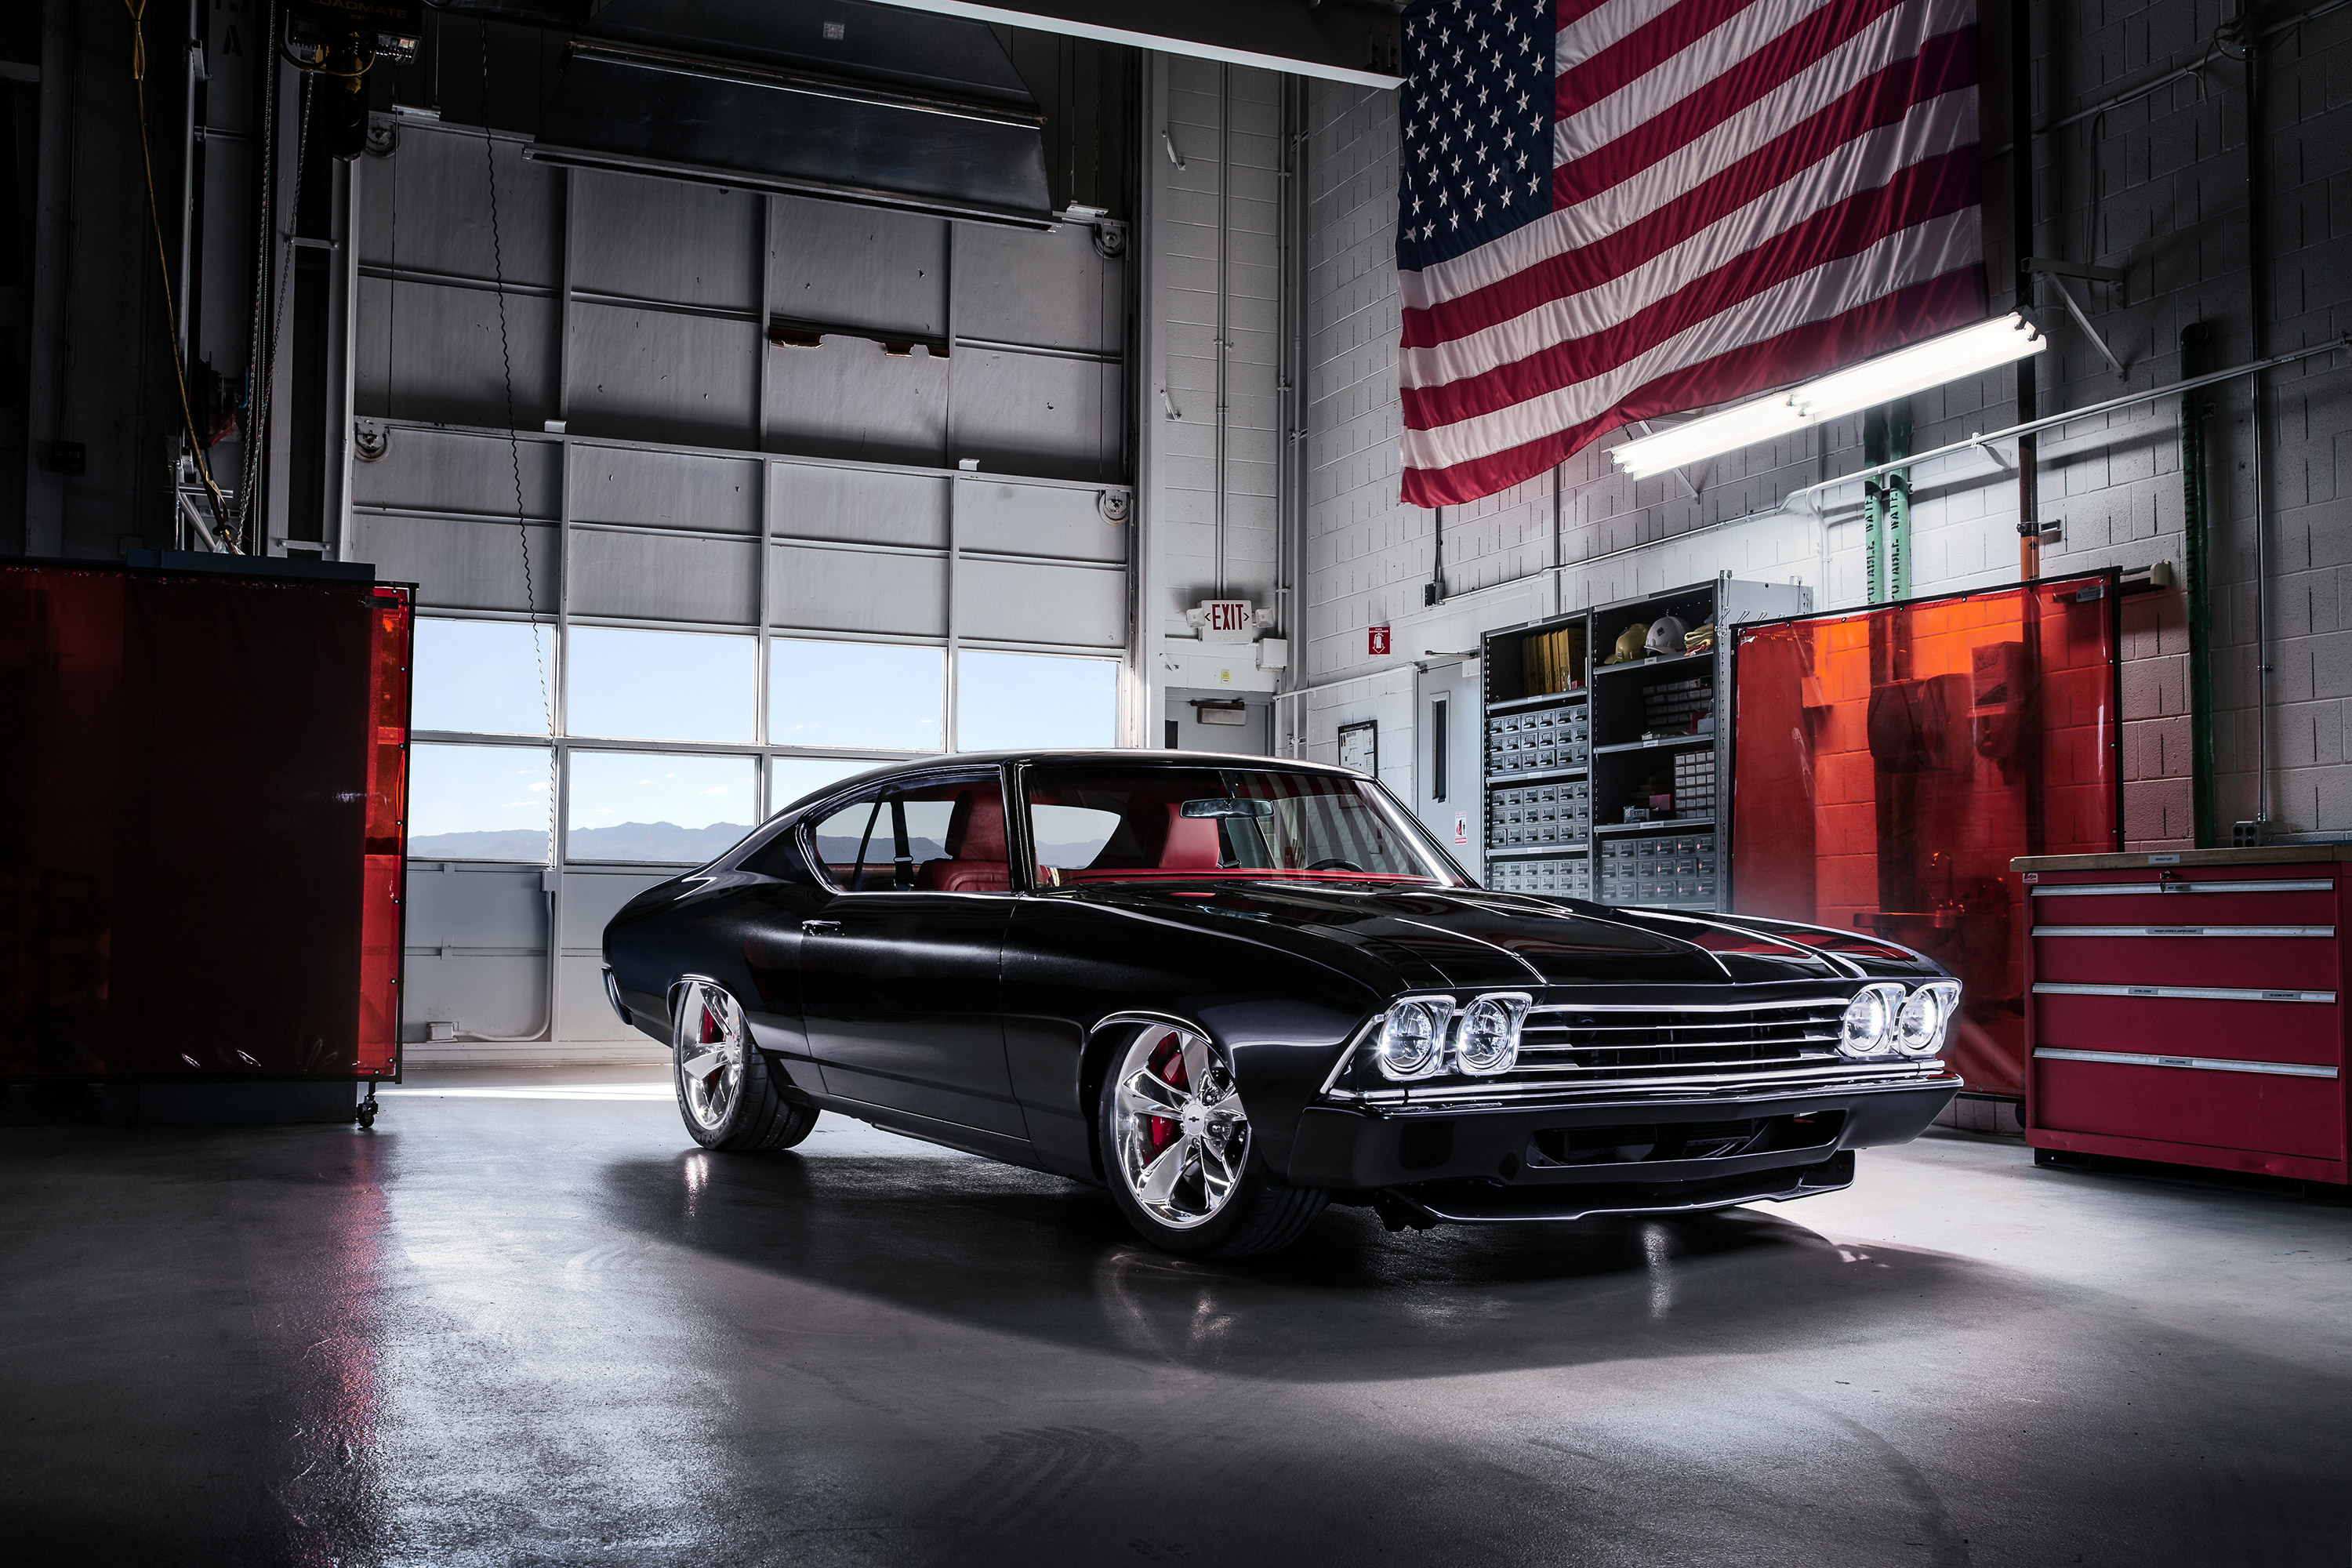 Chevrolet Chevelle Muscle Car HD Cars 4k Wallpapers